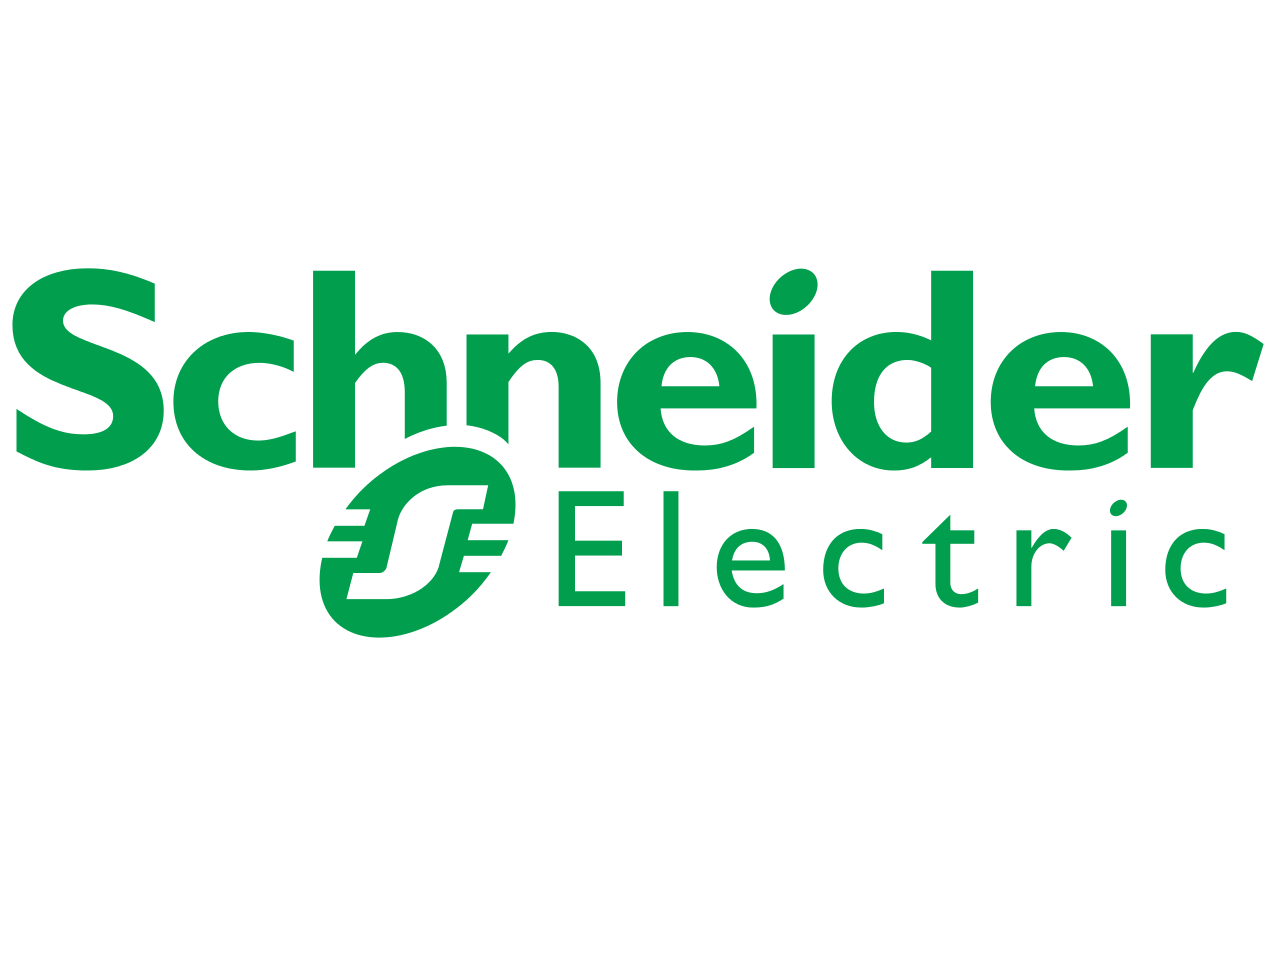 kisspng-schneider-electric-computer-software-automation-ma-5b0ea53603f953.0721029615276864540163